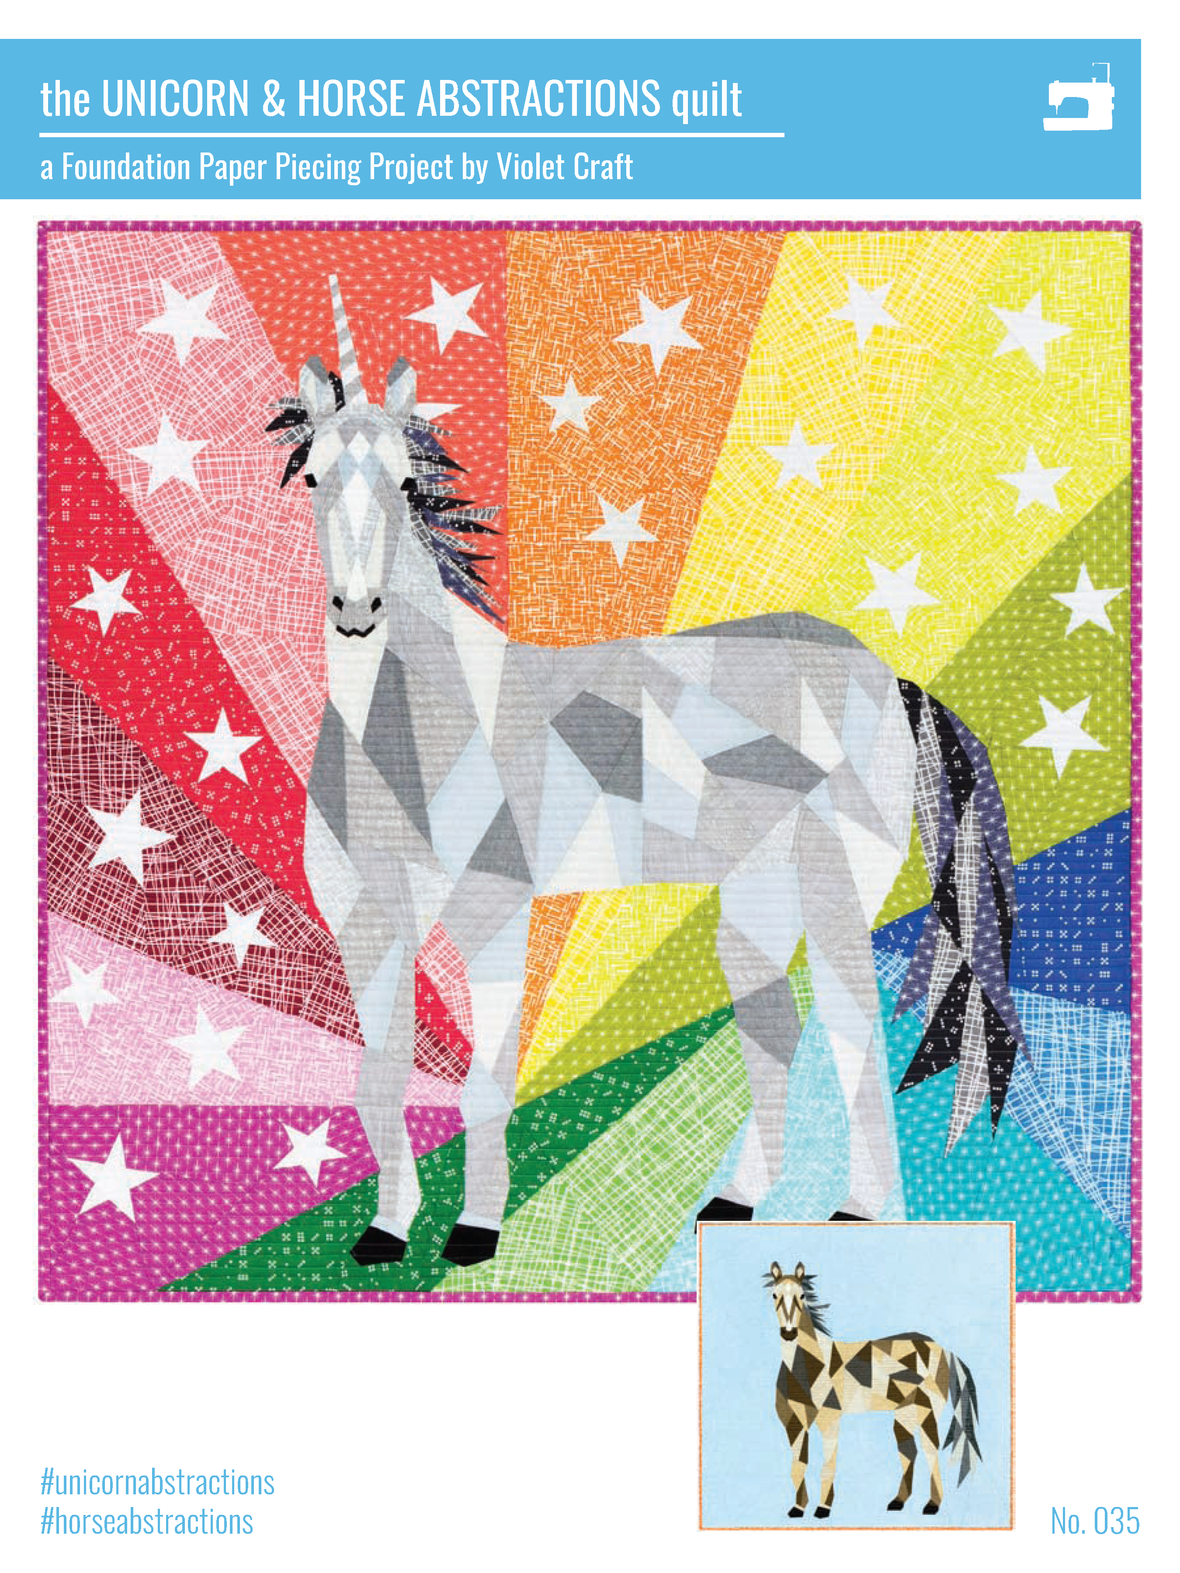 VC035 TheHorseAndUnicornAbstractionsQuilt cover 1